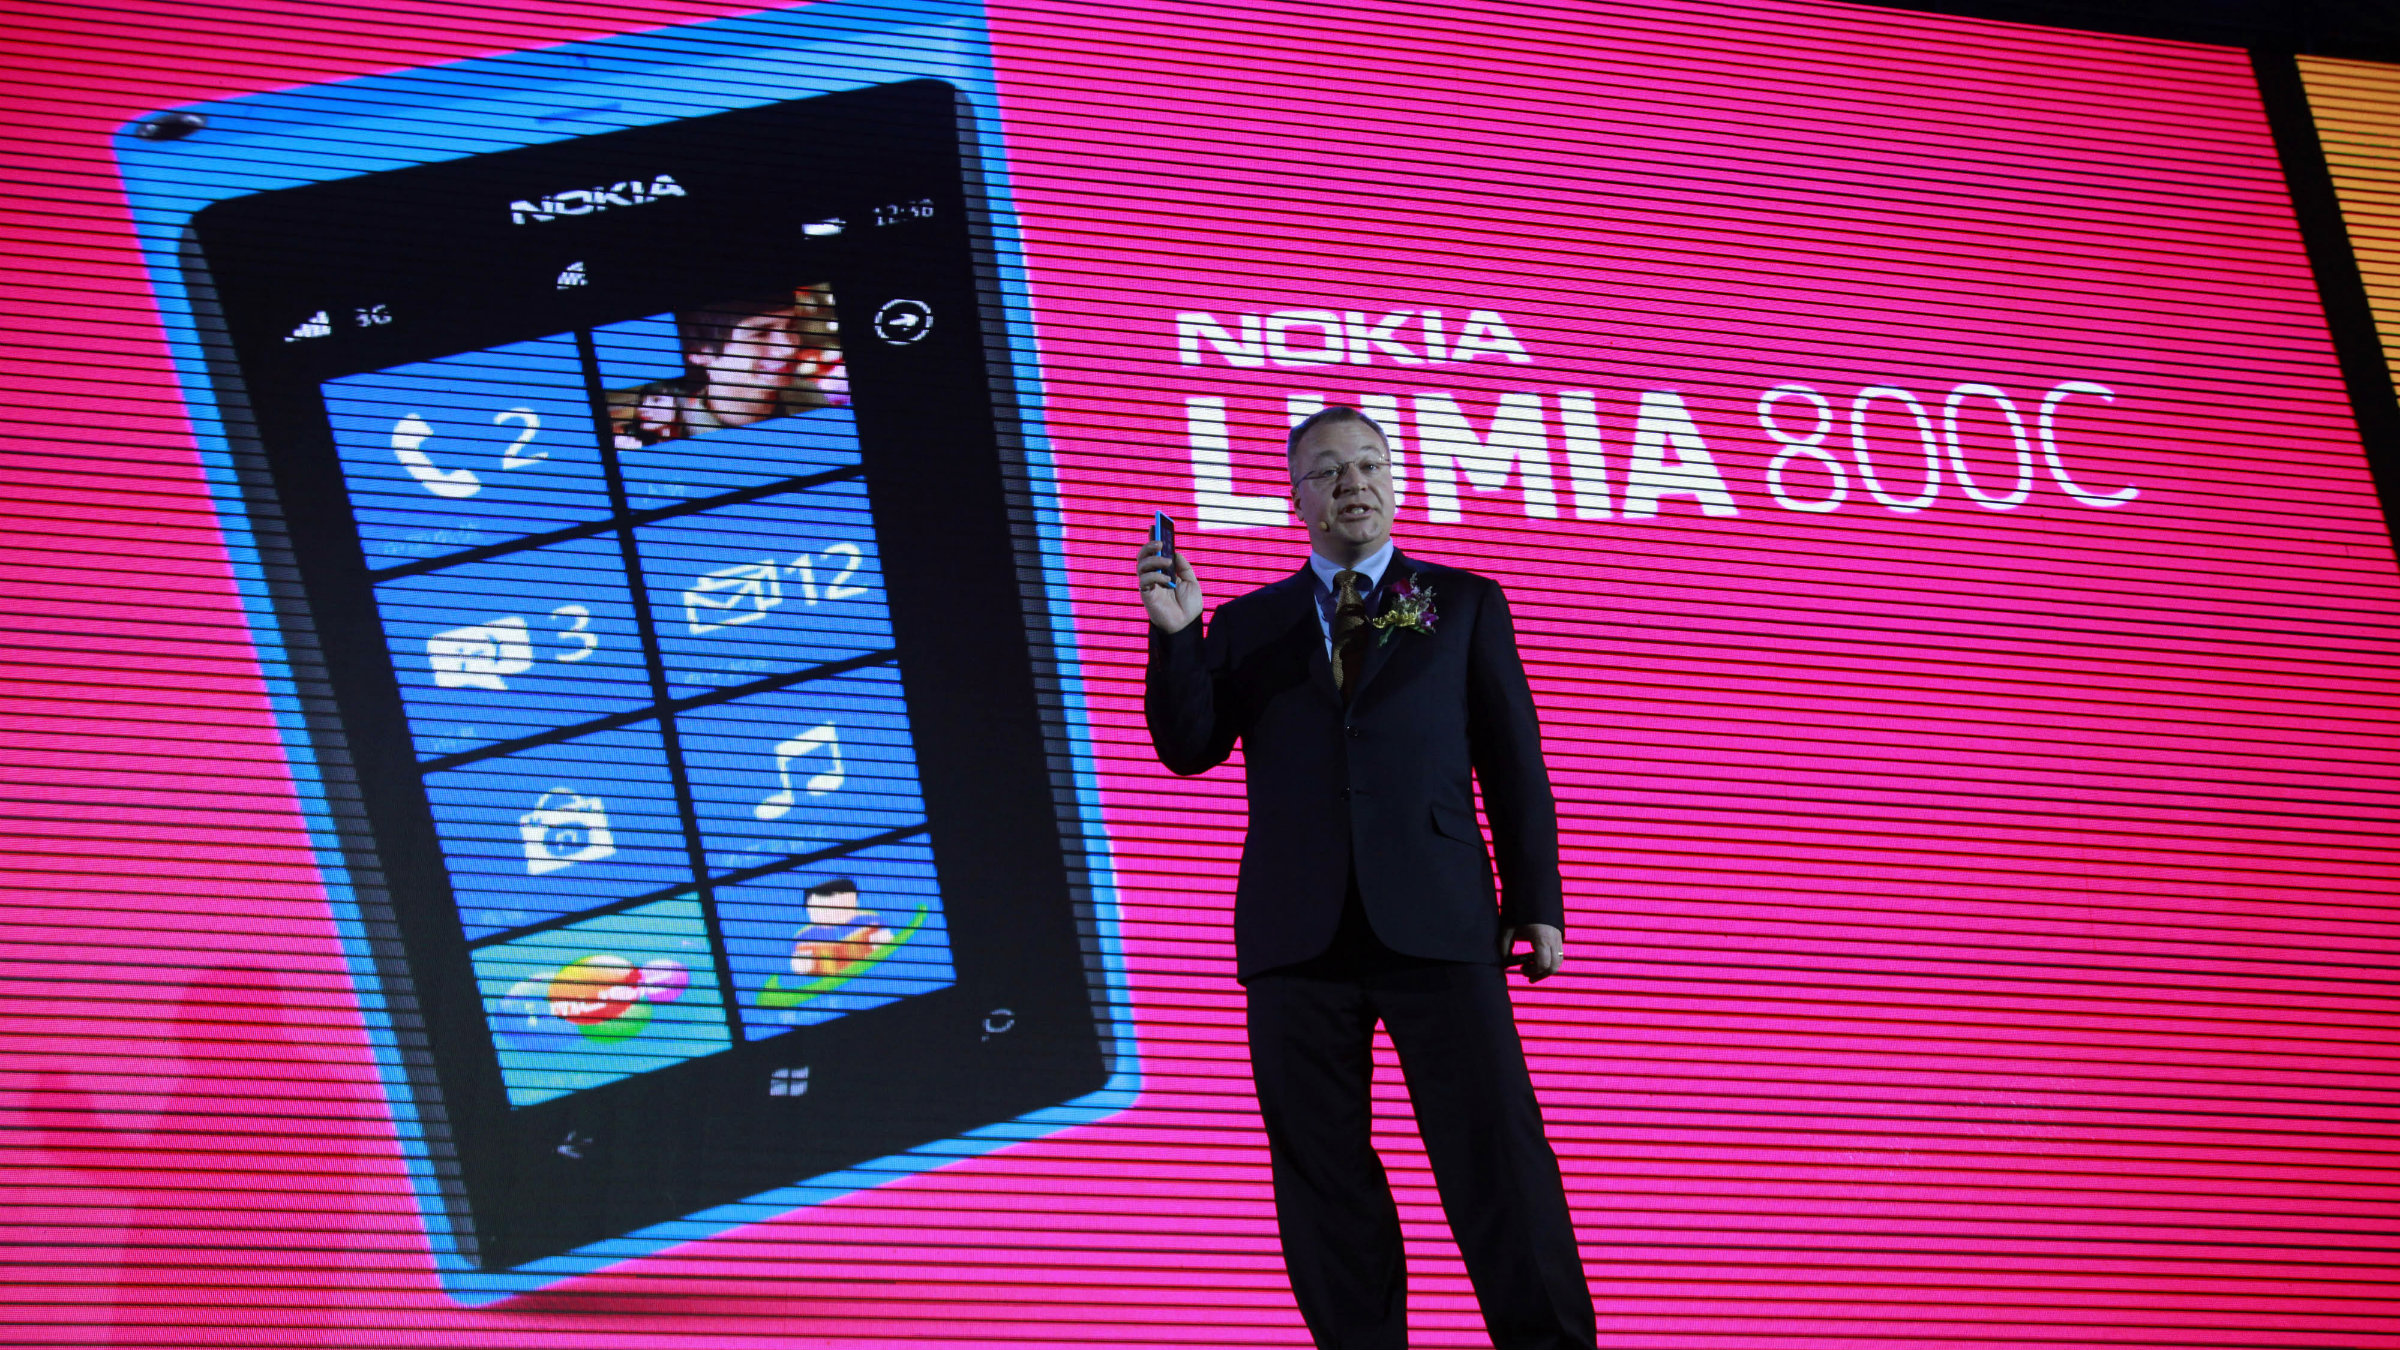 Nokia CEO Stephen Elop announces the launch of the company's new Lumia 800C smartphone in Beijing, China, Wednesday, March 28, 2012. Struggling cellphone maker Nokia launched its first smartphone design for China on Wednesday, looking to the world's biggest mobile market to help drive a turnaround.(AP Photo/Ng Han Guan)